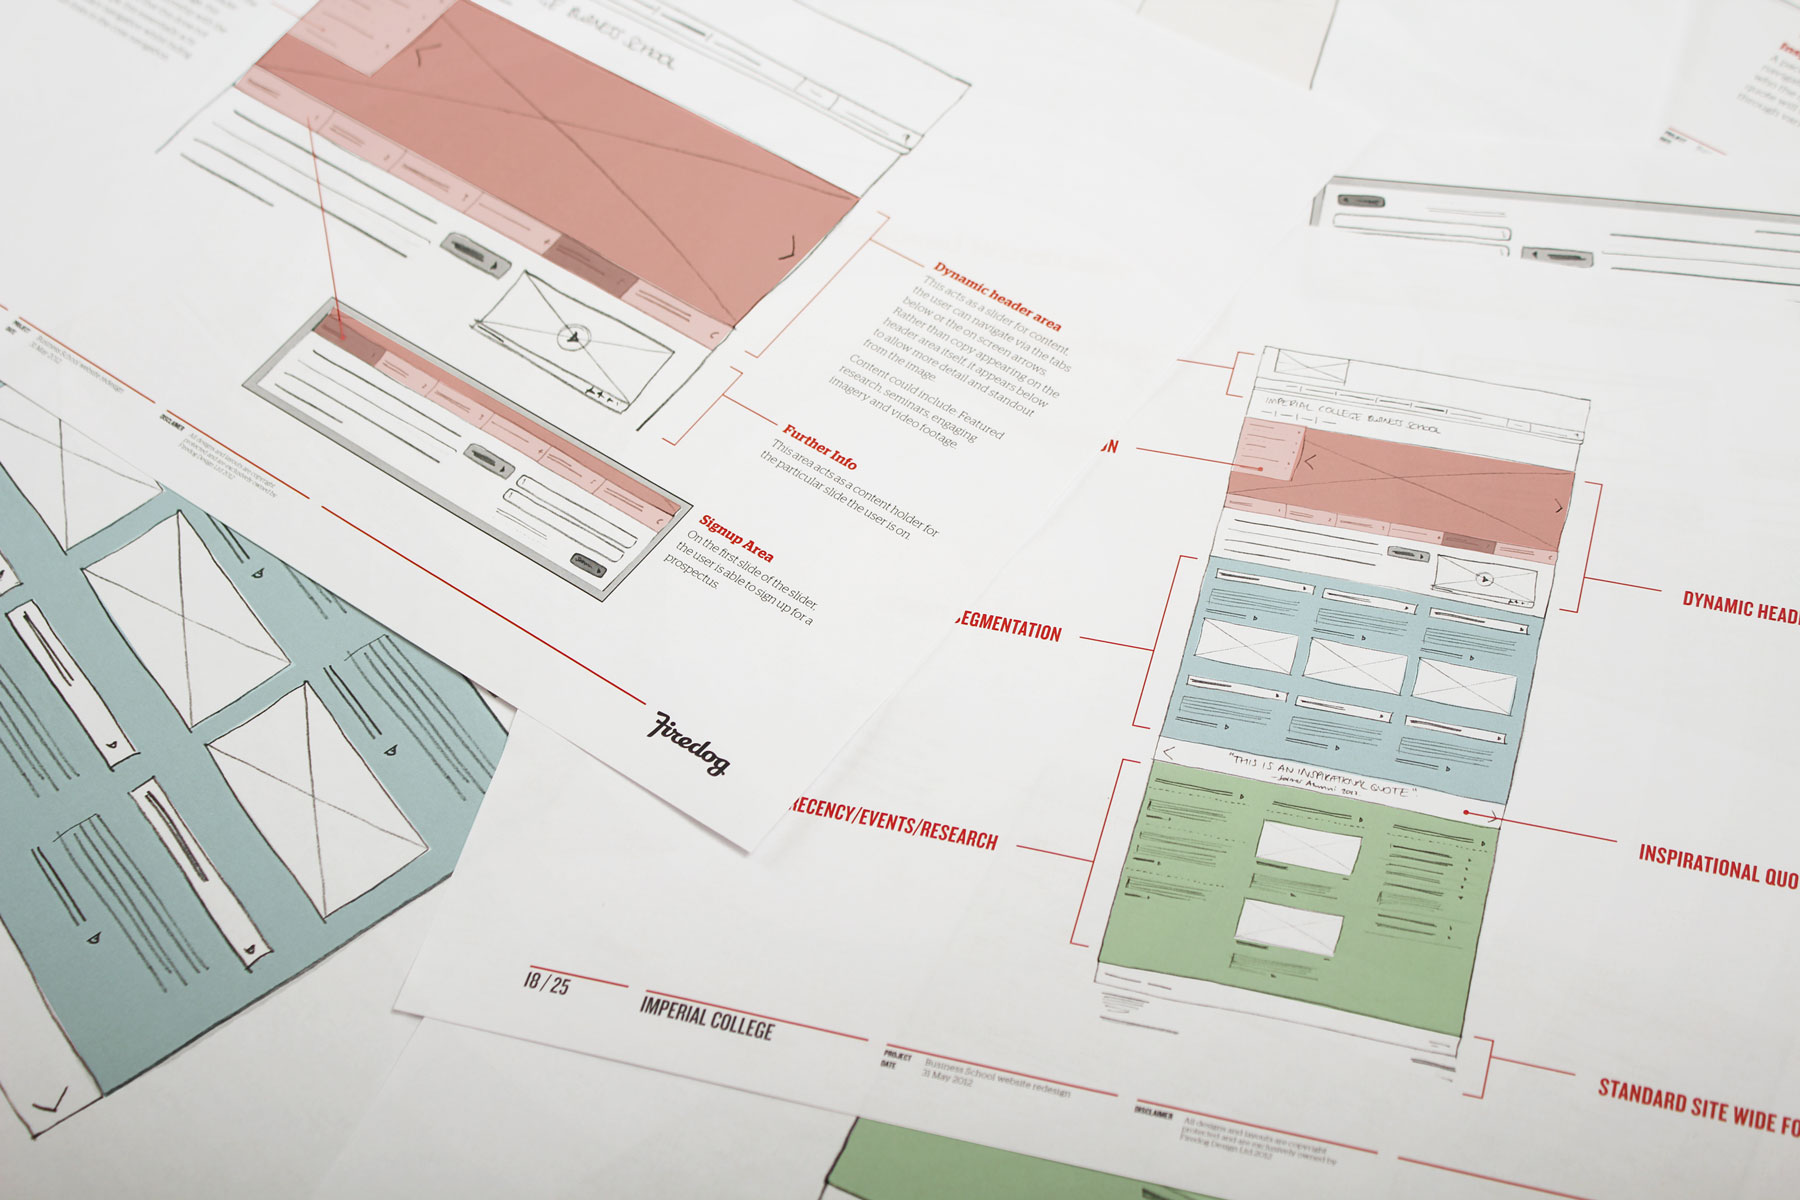 Before we begin the design process, rough sketched wireframes are put together to ensure key fucntional elements deliver strategic content effectively